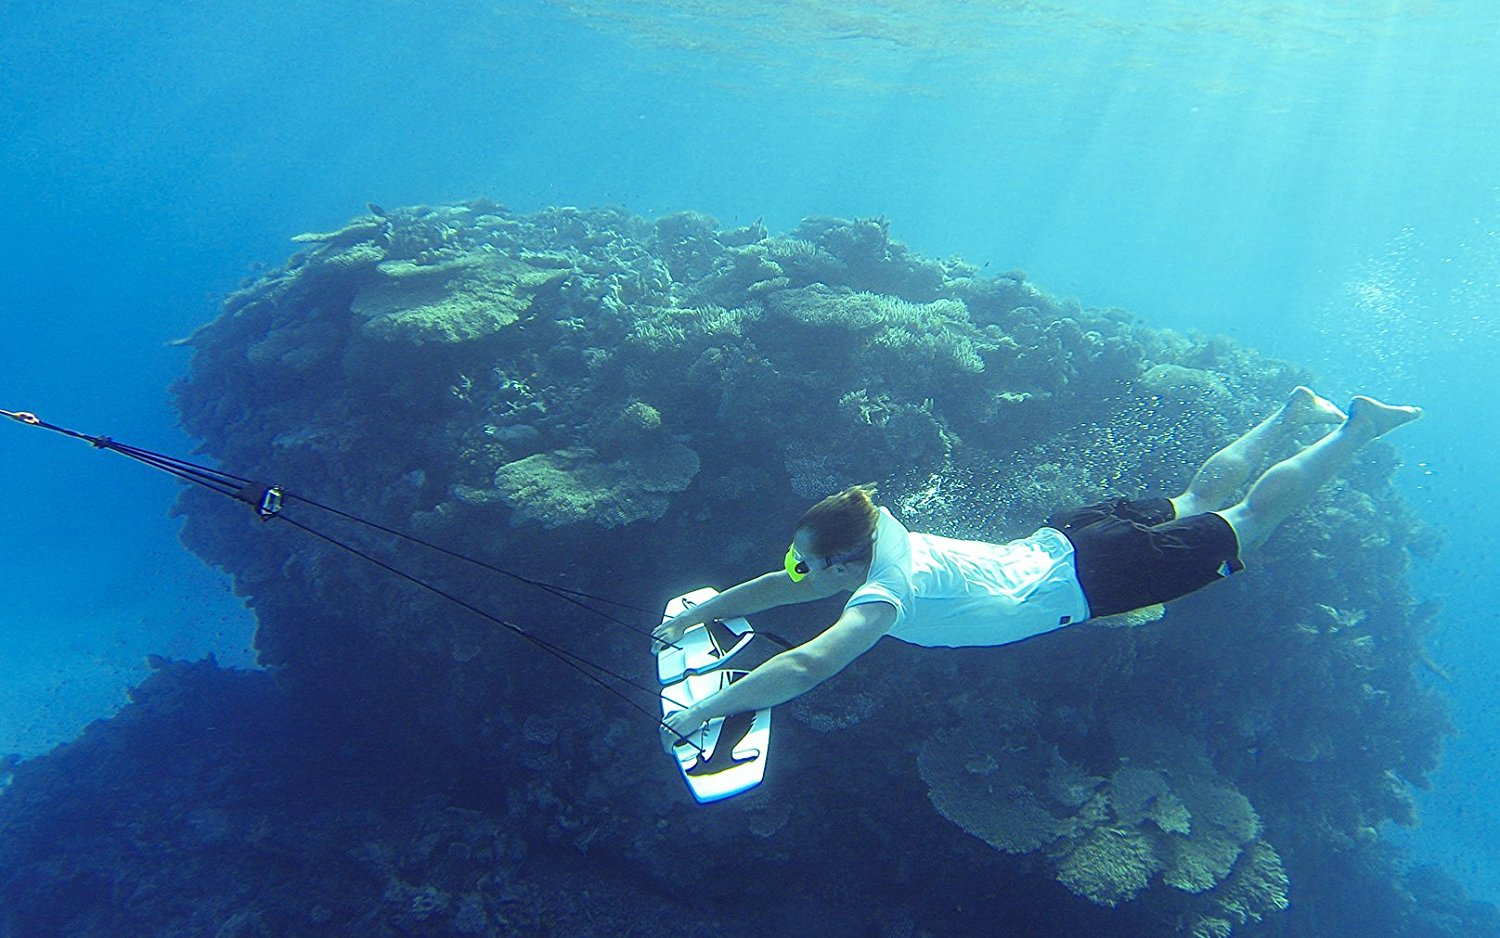 Subwing Underwater Flying Wing Coral Reef